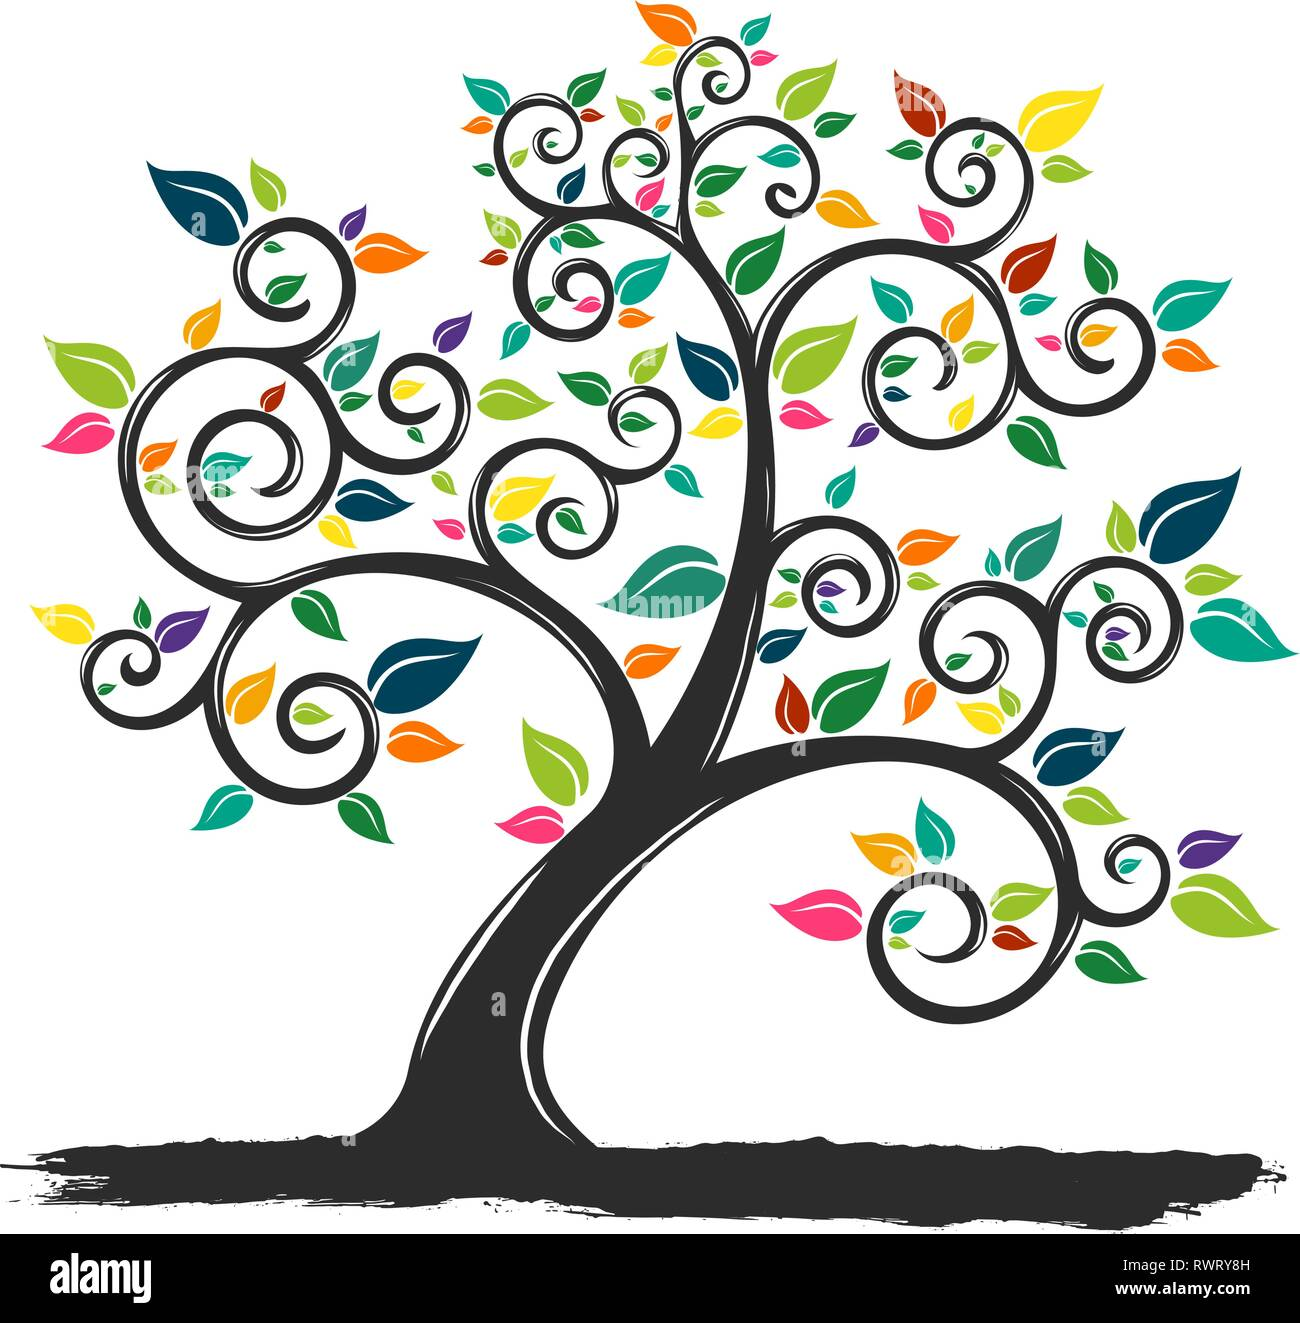 illustration of a tree with colored leaves Stock Vector